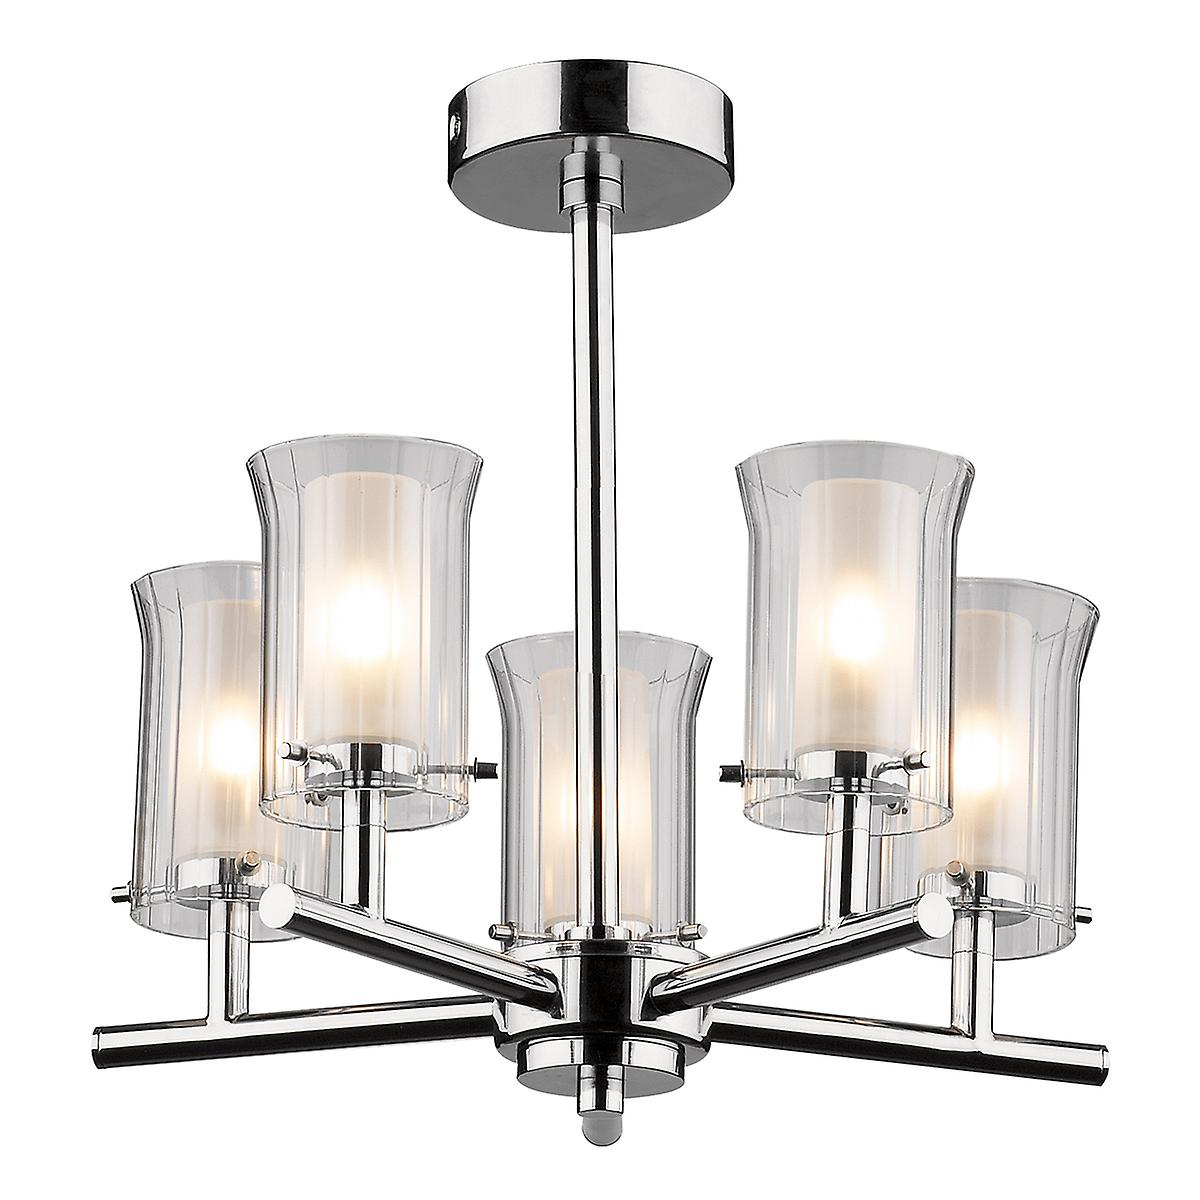 Dar ELB0550 Elba Modern Chrome Bathroom Semi-Flush Ceiling Light